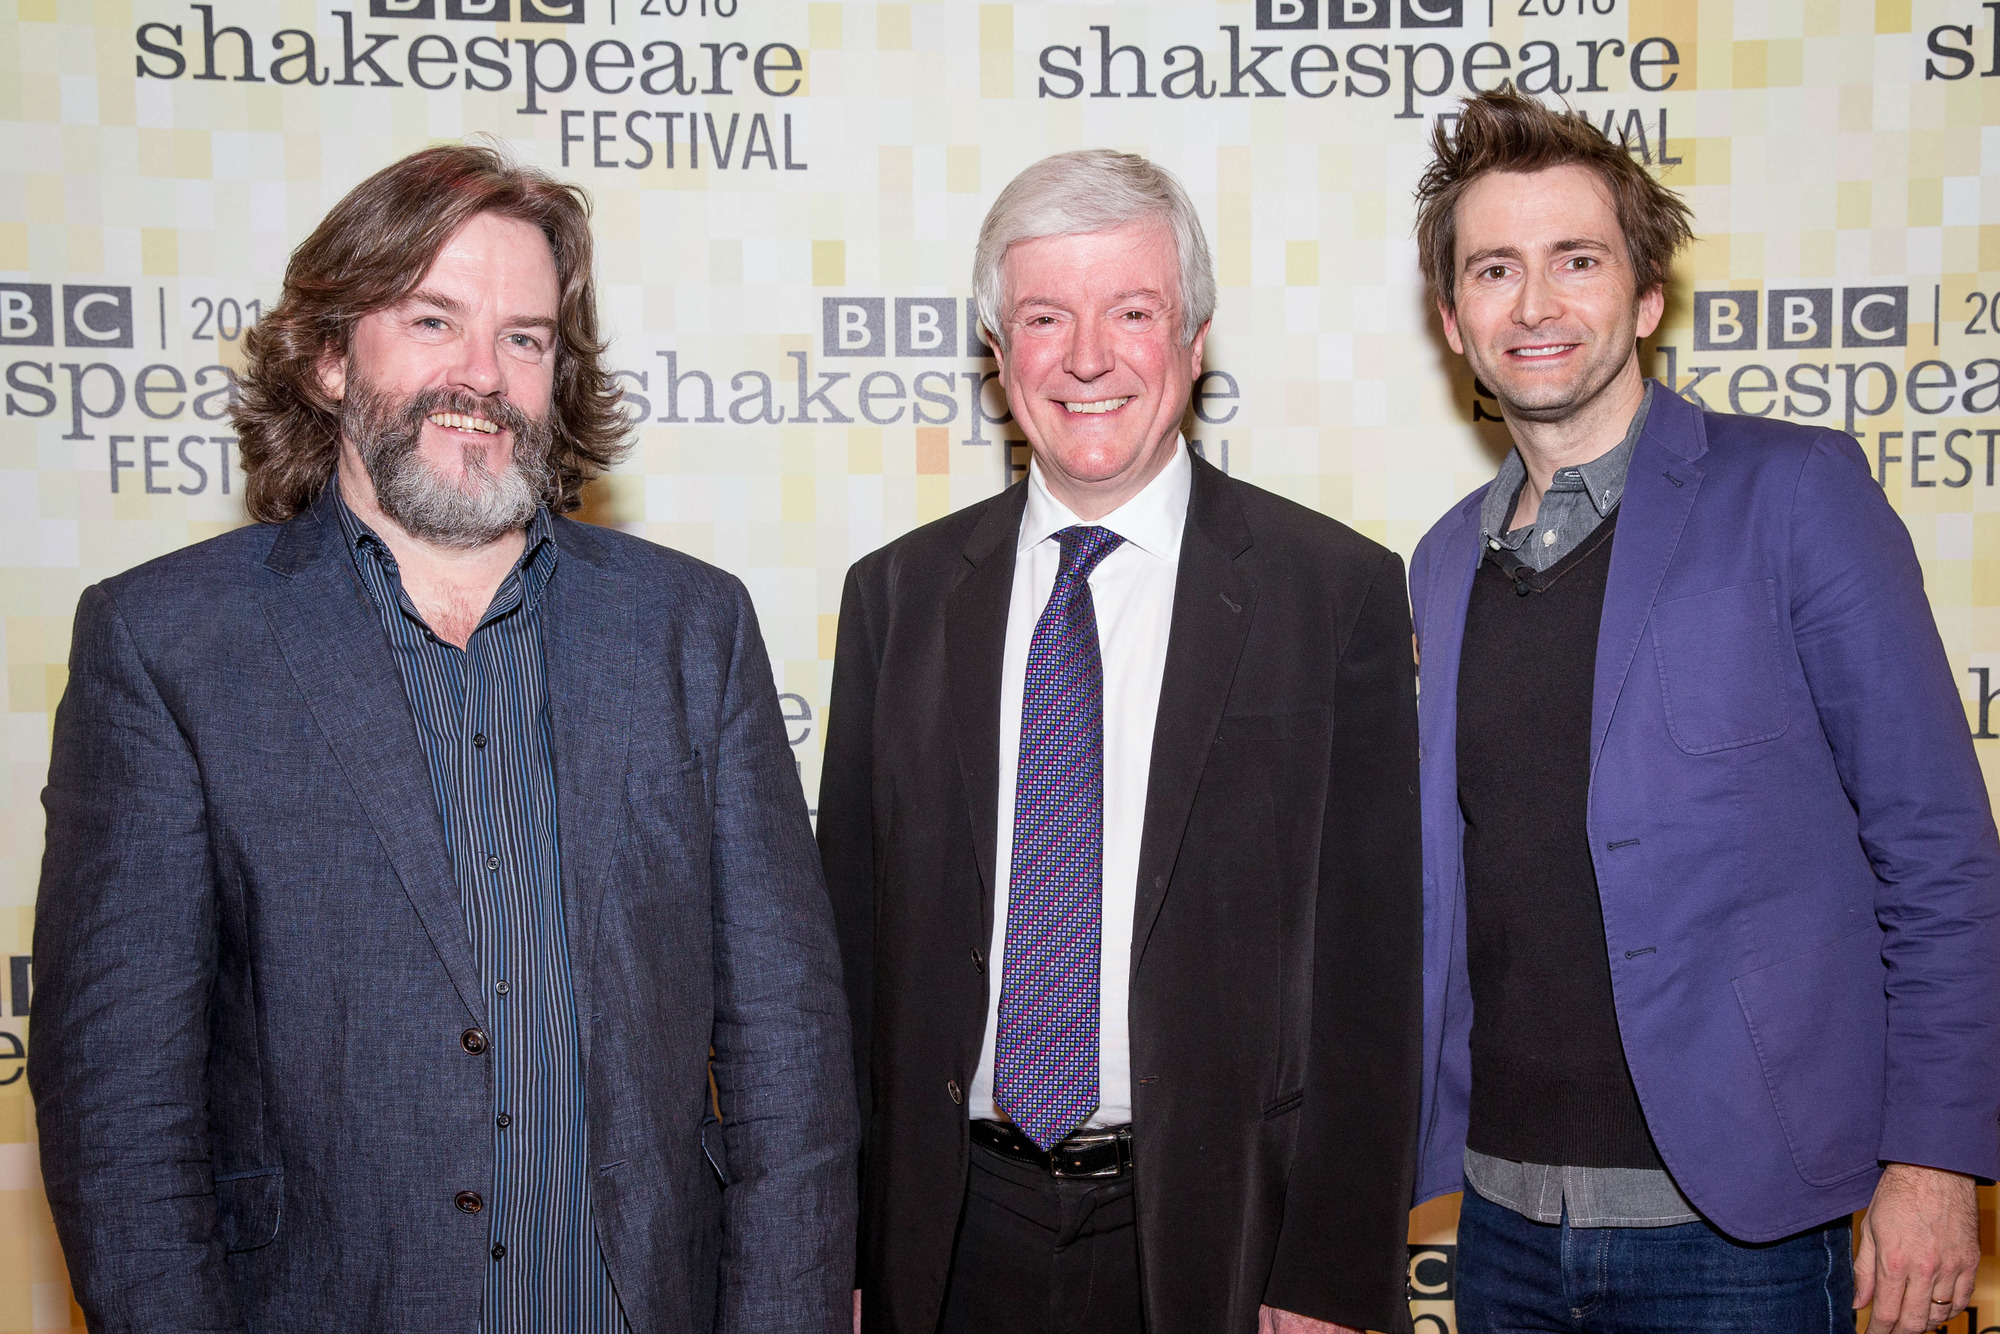 Tony Hall with RSC Artistic Director, Greg Doran & David Tennant (Credit: BBC/Guy Levy)